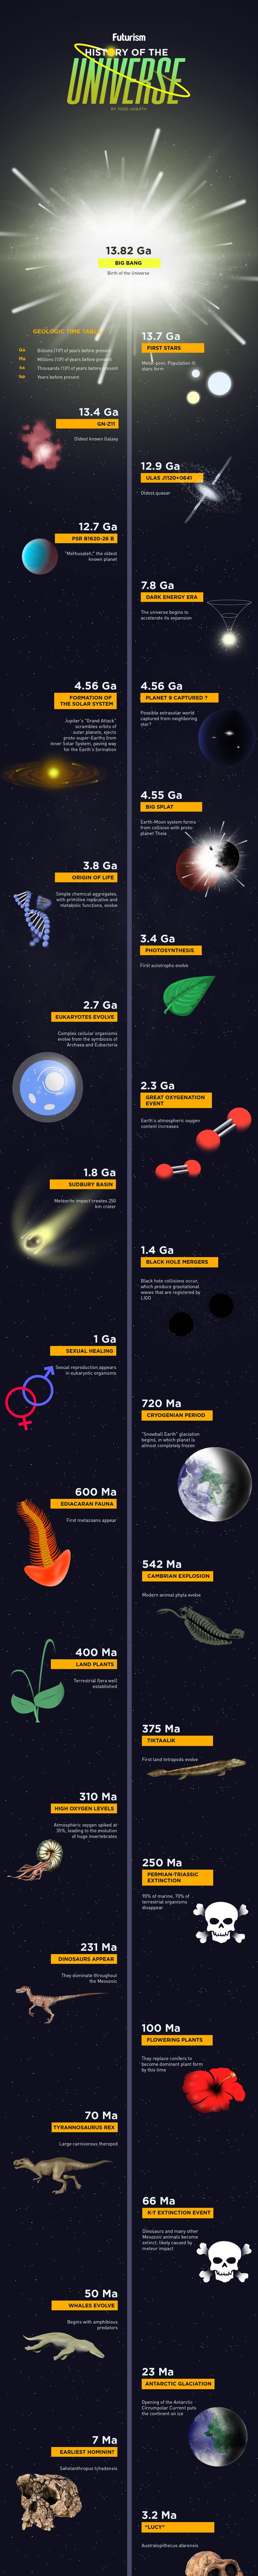 The Universe has undergone so much change over its 13.7 billion-year history. Take a journey through our great cosmic timeline.   http://futurism.com/images/the-history-of-the-universe-infographic/?utm_campaign=coschedule&utm_source=pinterest&utm_medium=Futurism&utm_content=The%20History%20Of%20The%20Universe%20%5BInfographic%5D